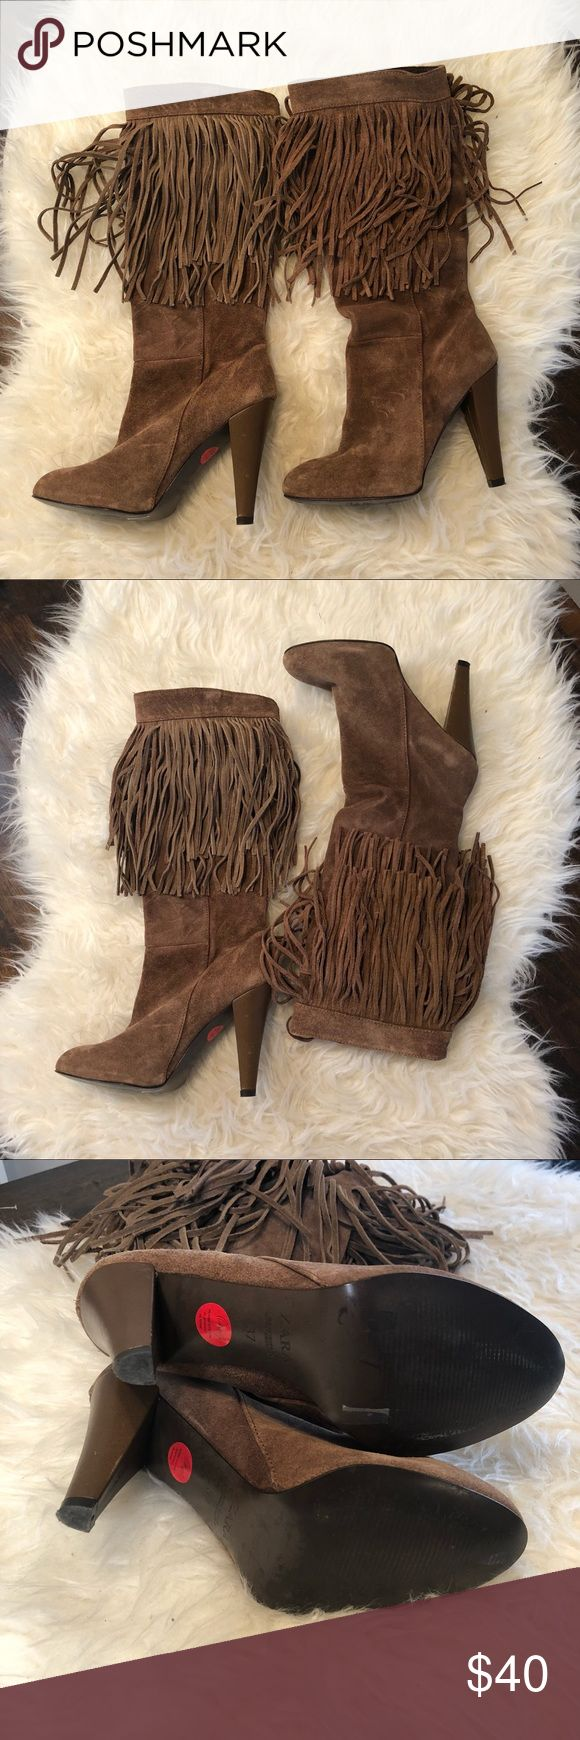 Festival Ready Suede Fringe Zara Boot Super cool brown suede Zara boots with boho fringe.  Gently used condition.  Few knicks on heel. Made in Spain. These boots are awesome. size 37 Euro.  Approx 9.5 inches heel to toe length.  4 inch heel height.   Bundles and offers welcome.  All orders ship within 24 hours unless the weekend then Monday am. Zara Shoes Heeled Boots